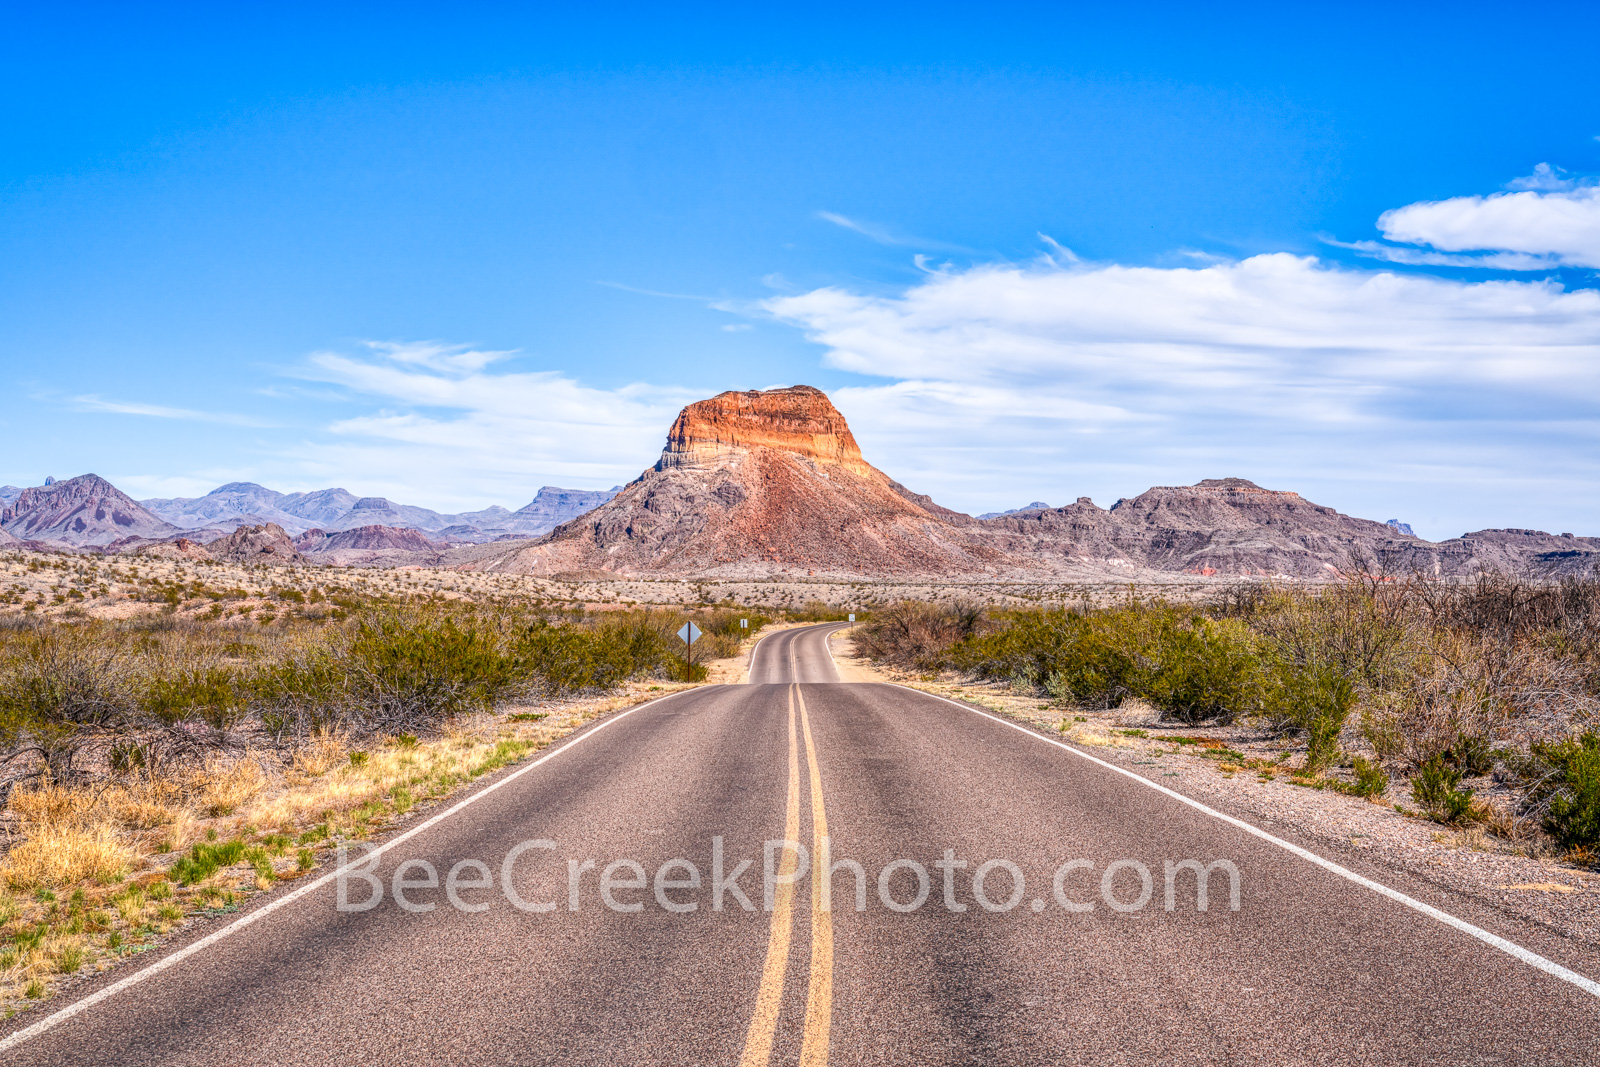 Big Bend National Park, desert southwest, scenic ross maxwell drive, chiso mountains, texas mountains, texas, west texas, chihuahuan desert, big bend, desert, texas landscape, texas scenery, cerro cas, photo